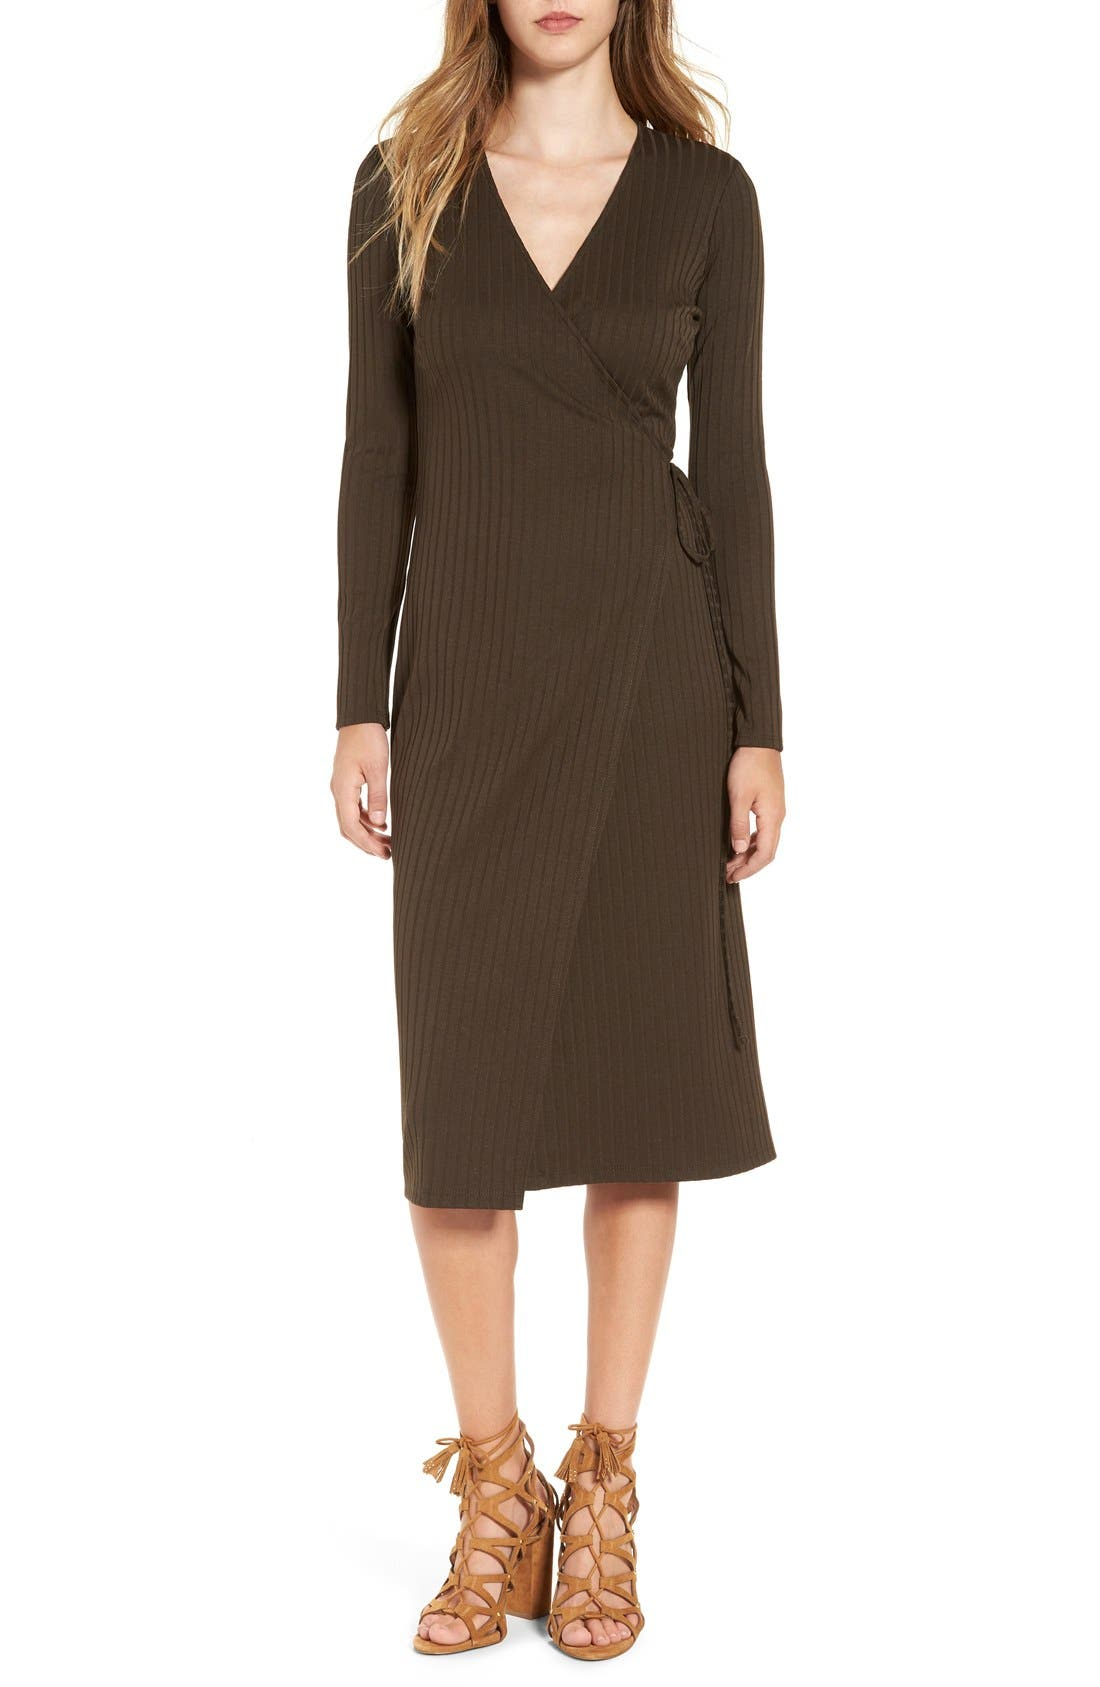 Alternate Image 1 Selected - ASTR Rib Knit Wrap Dress